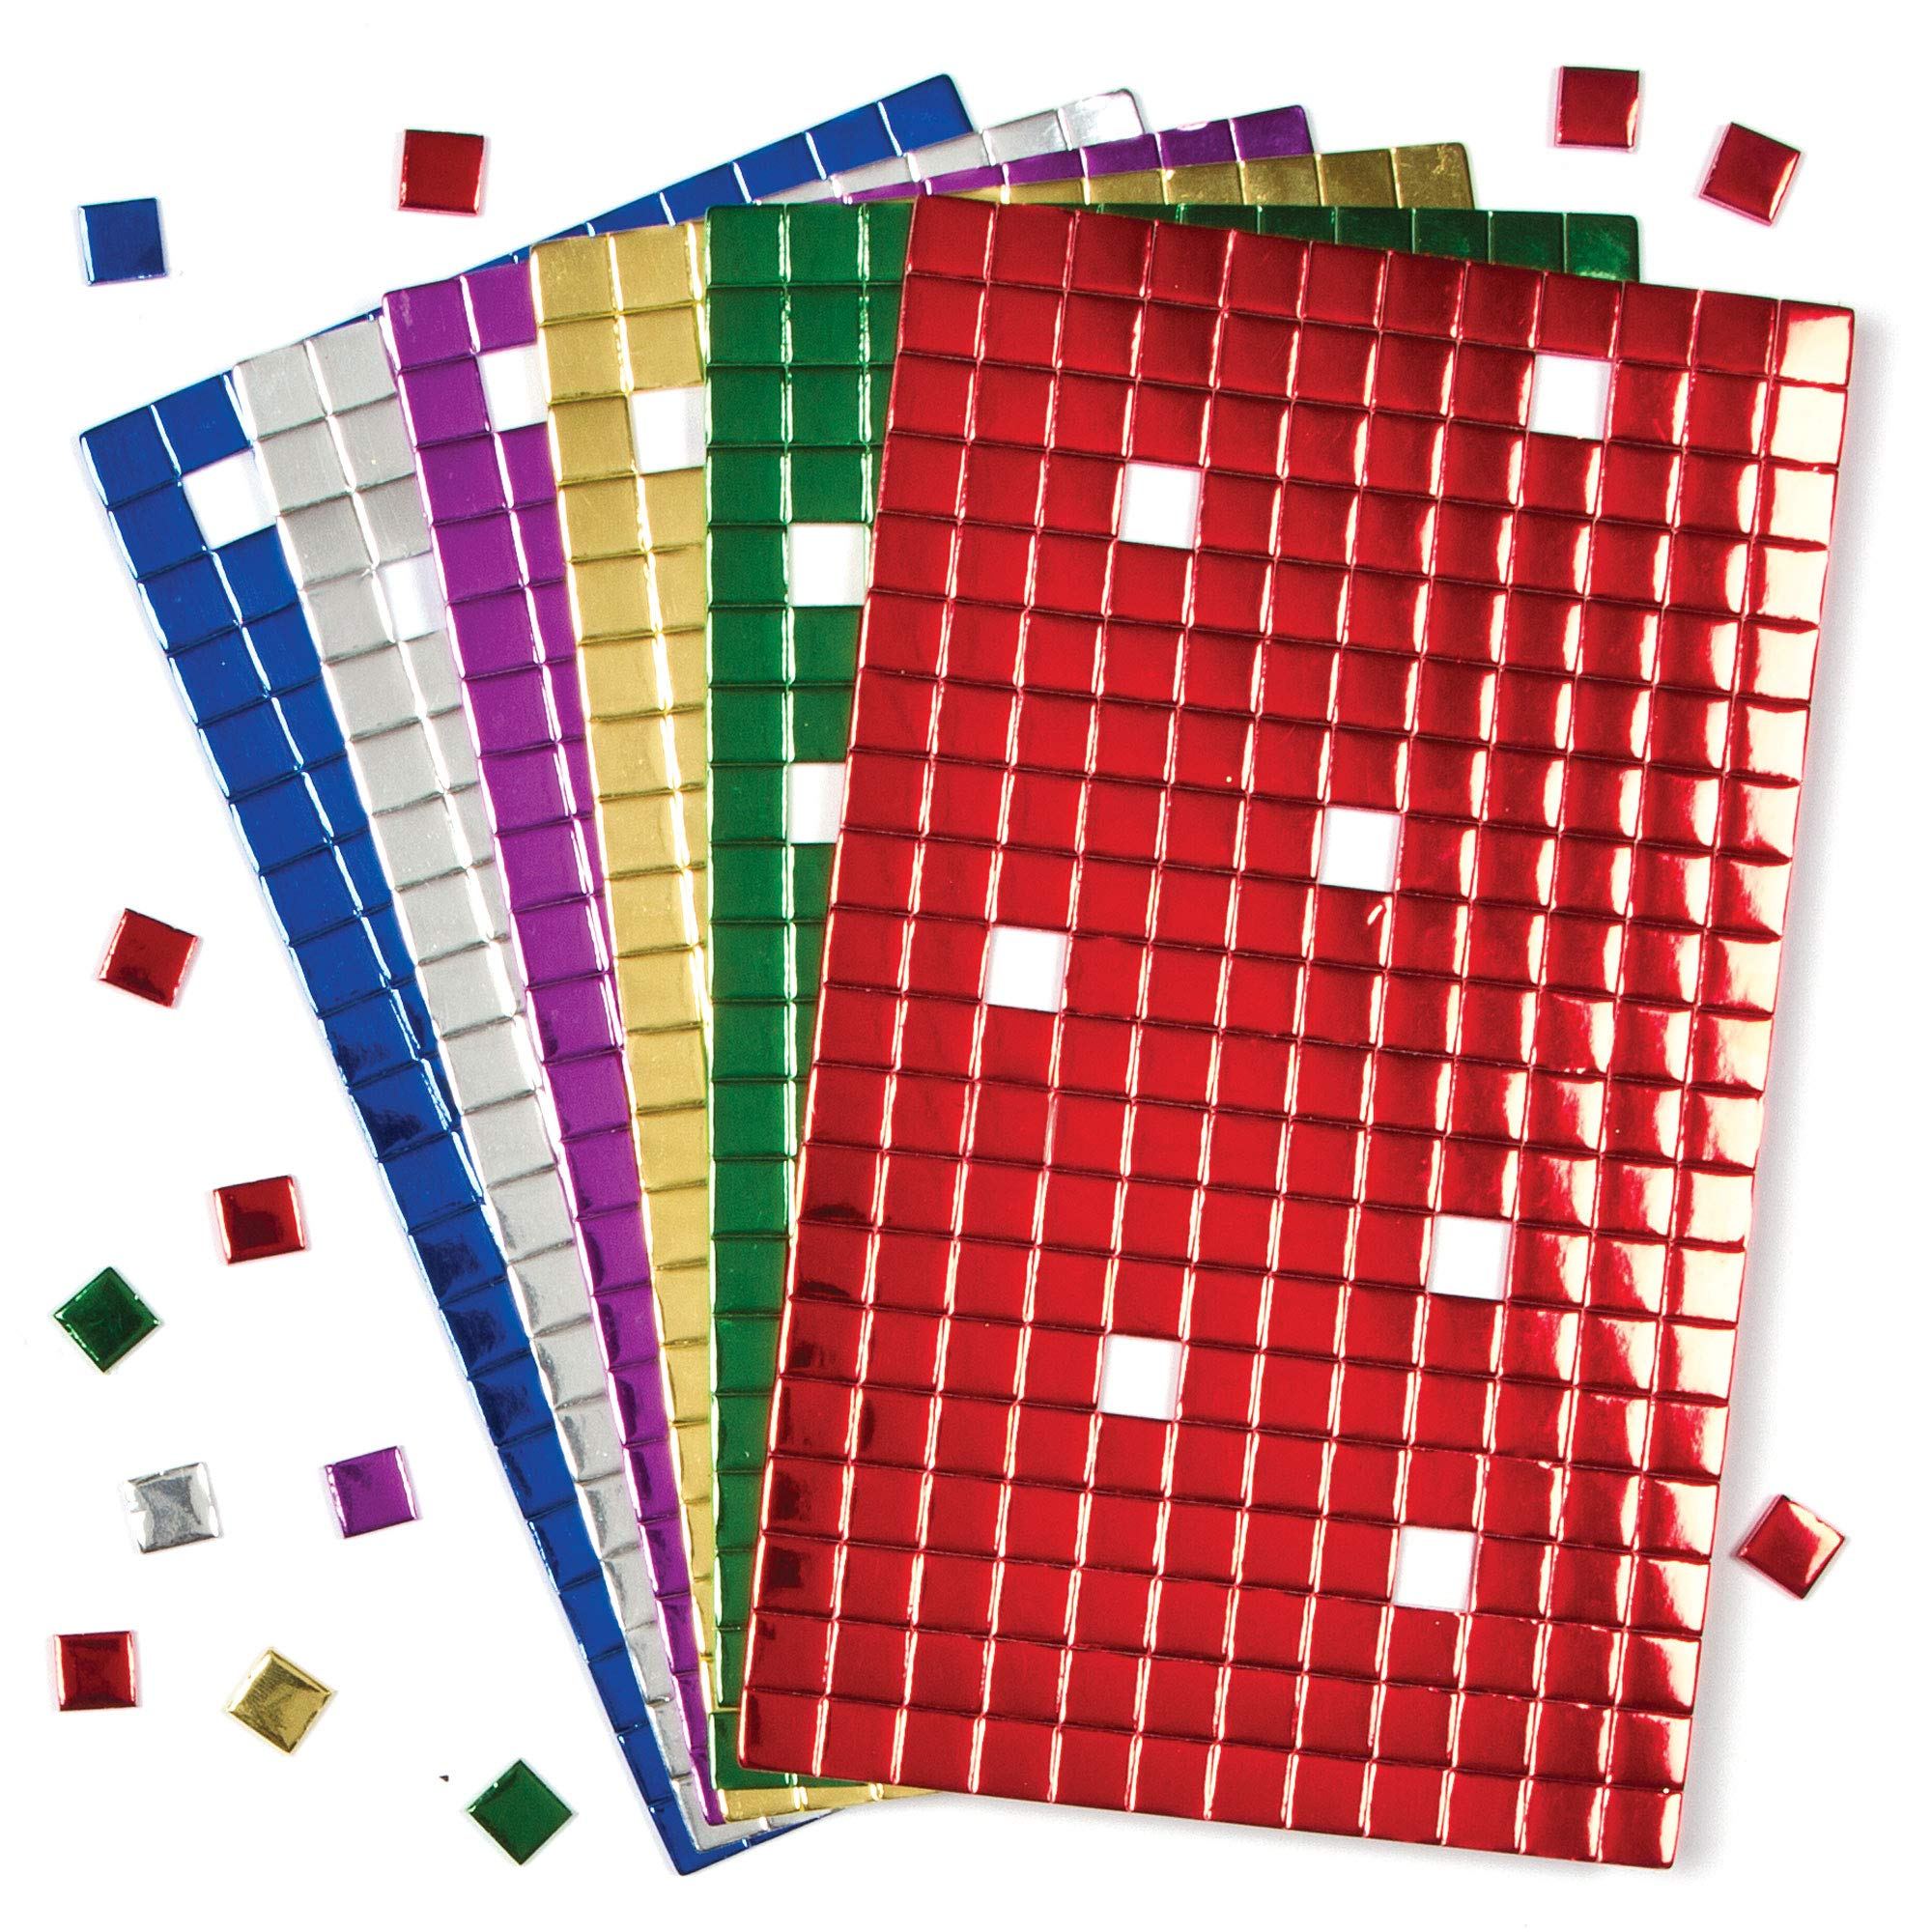 Baker Ross Self-Adhesive Foam Mosaic Square Decoration Stickers   Fun Arts and Crafts Project   No Glue or Scissors Needed   Pack of 1,440 Shiny Tiles